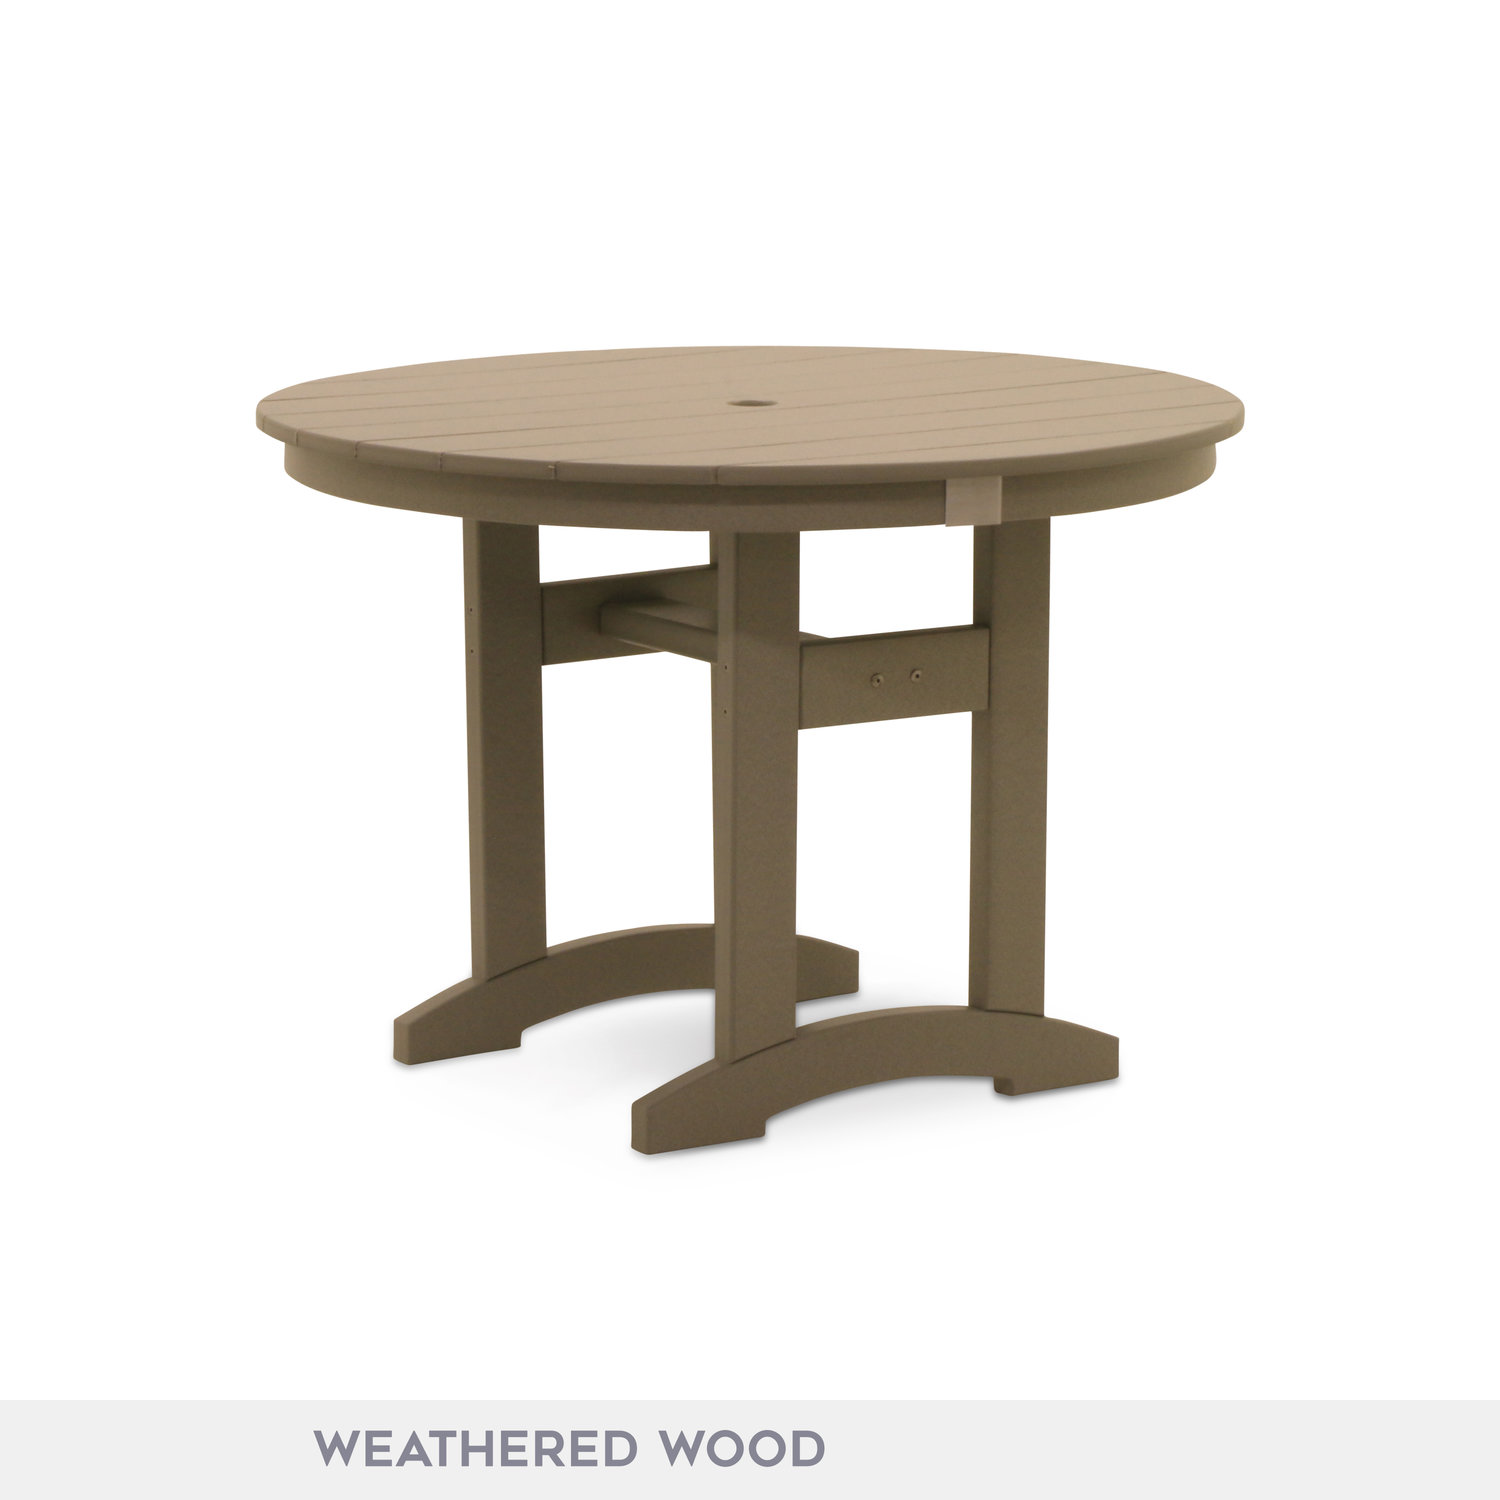 Durogreen 42 round dining table